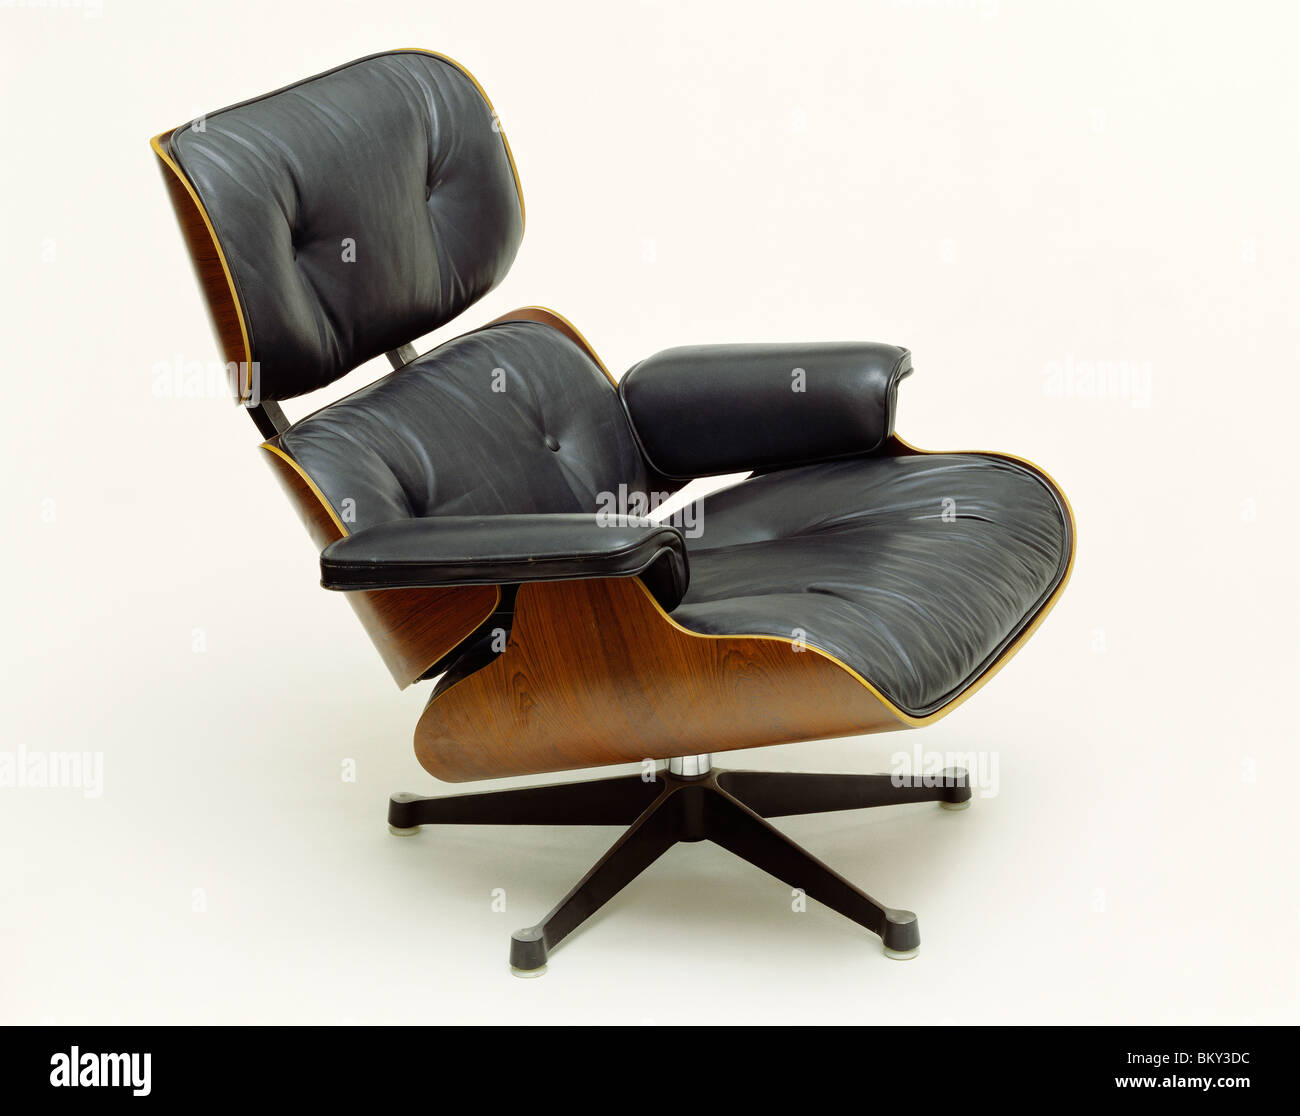 Armchair and footstool Model Ottoman 671, by Charles and Ray Eames. US, 1955 Stock Photo